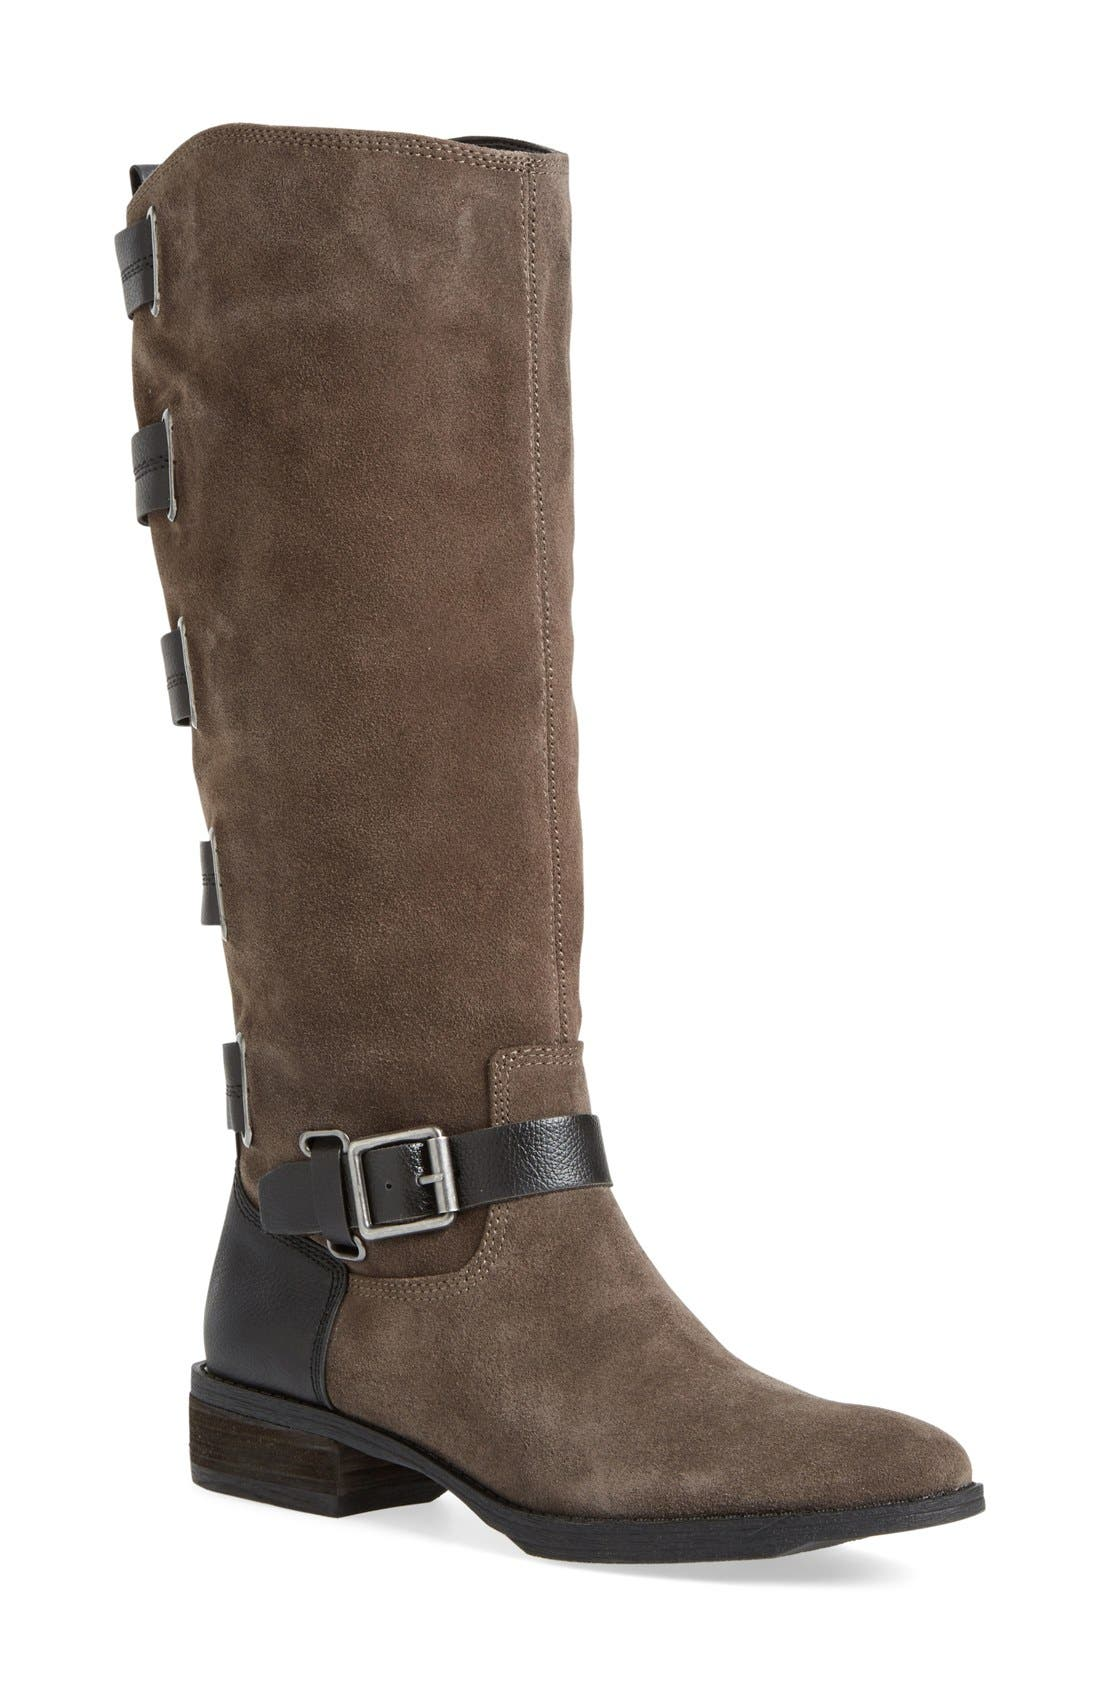 Alternate Image 1 Selected - Sole Society 'Franzie' Leather Knee High Boot